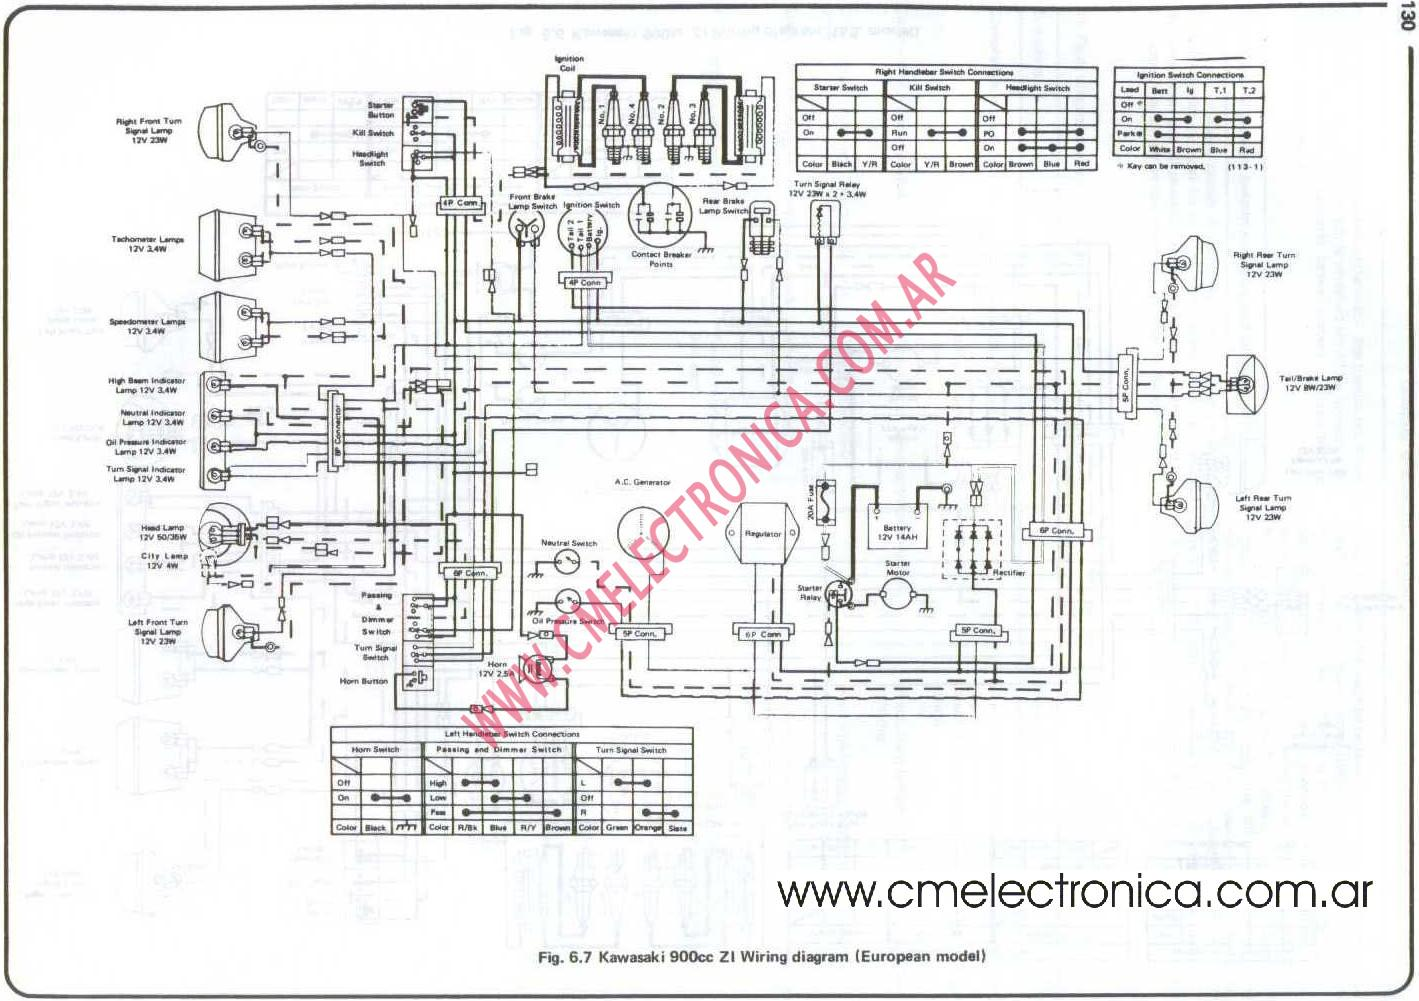 kawasaki z1 900 z1 wiring diagram coleman furnace wiring diagram \u2022 wiring diagrams zx9r 01 wiring diagram at n-0.co